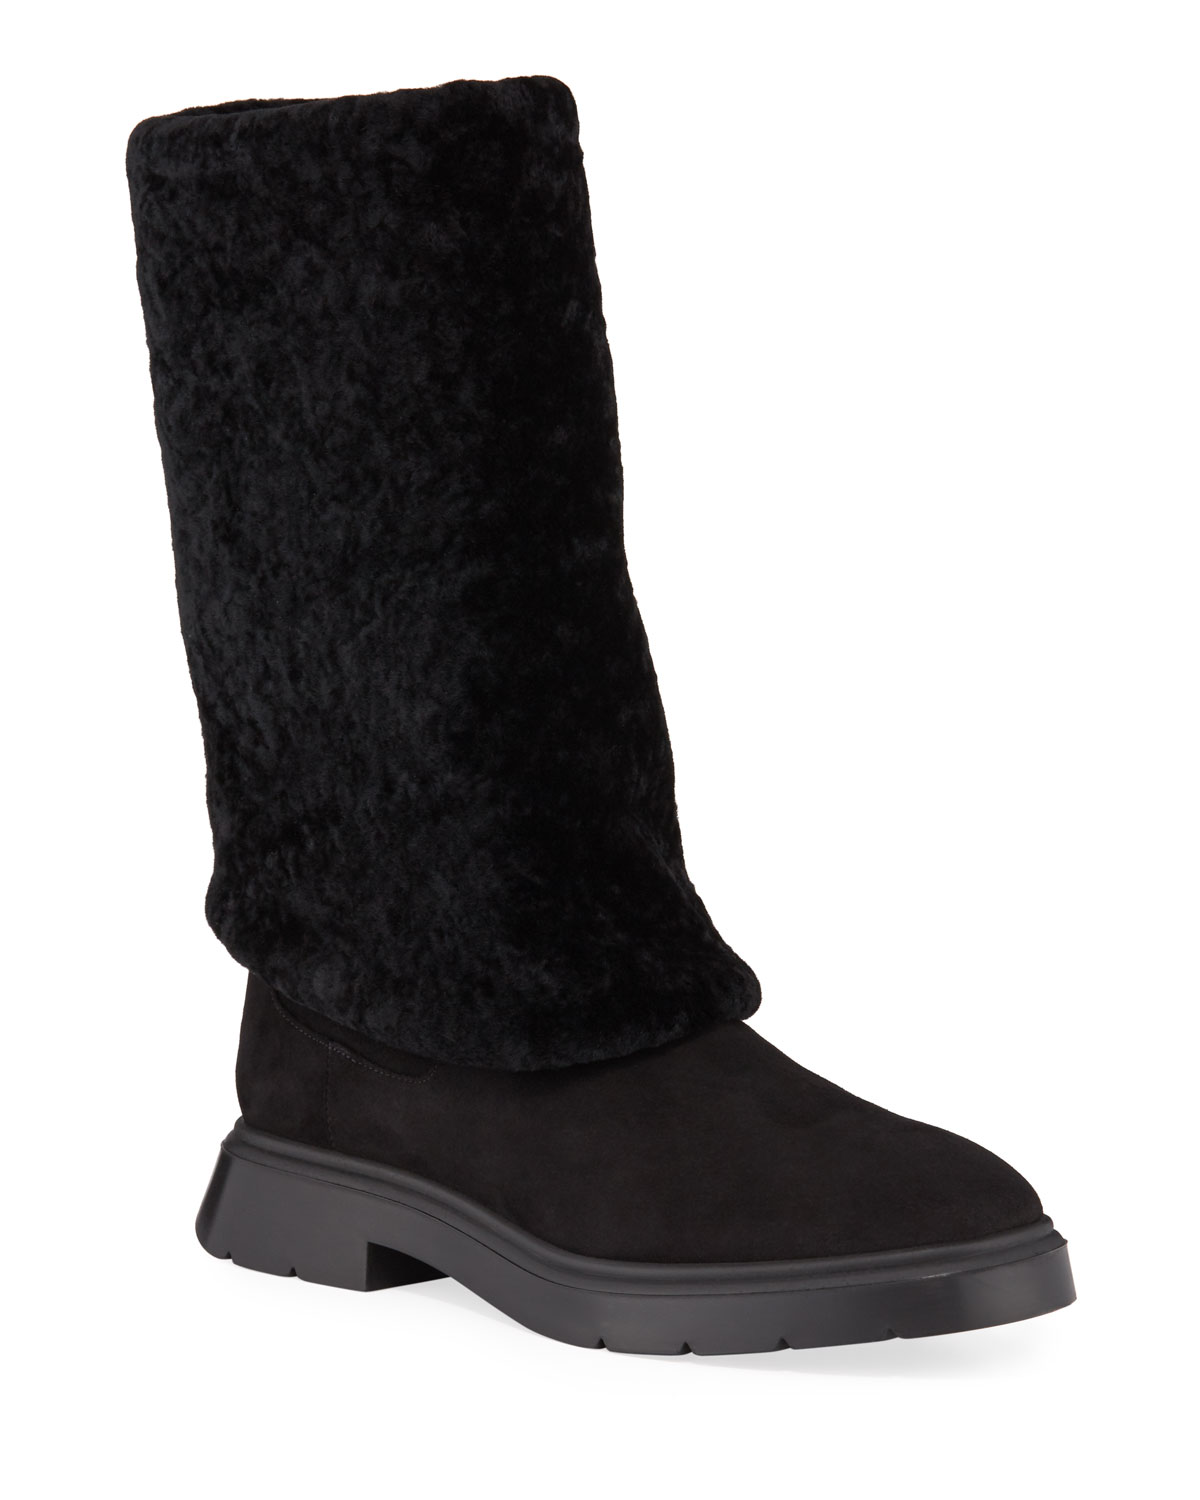 Luiza Chill Shearling Booties by Stuart Weitzman